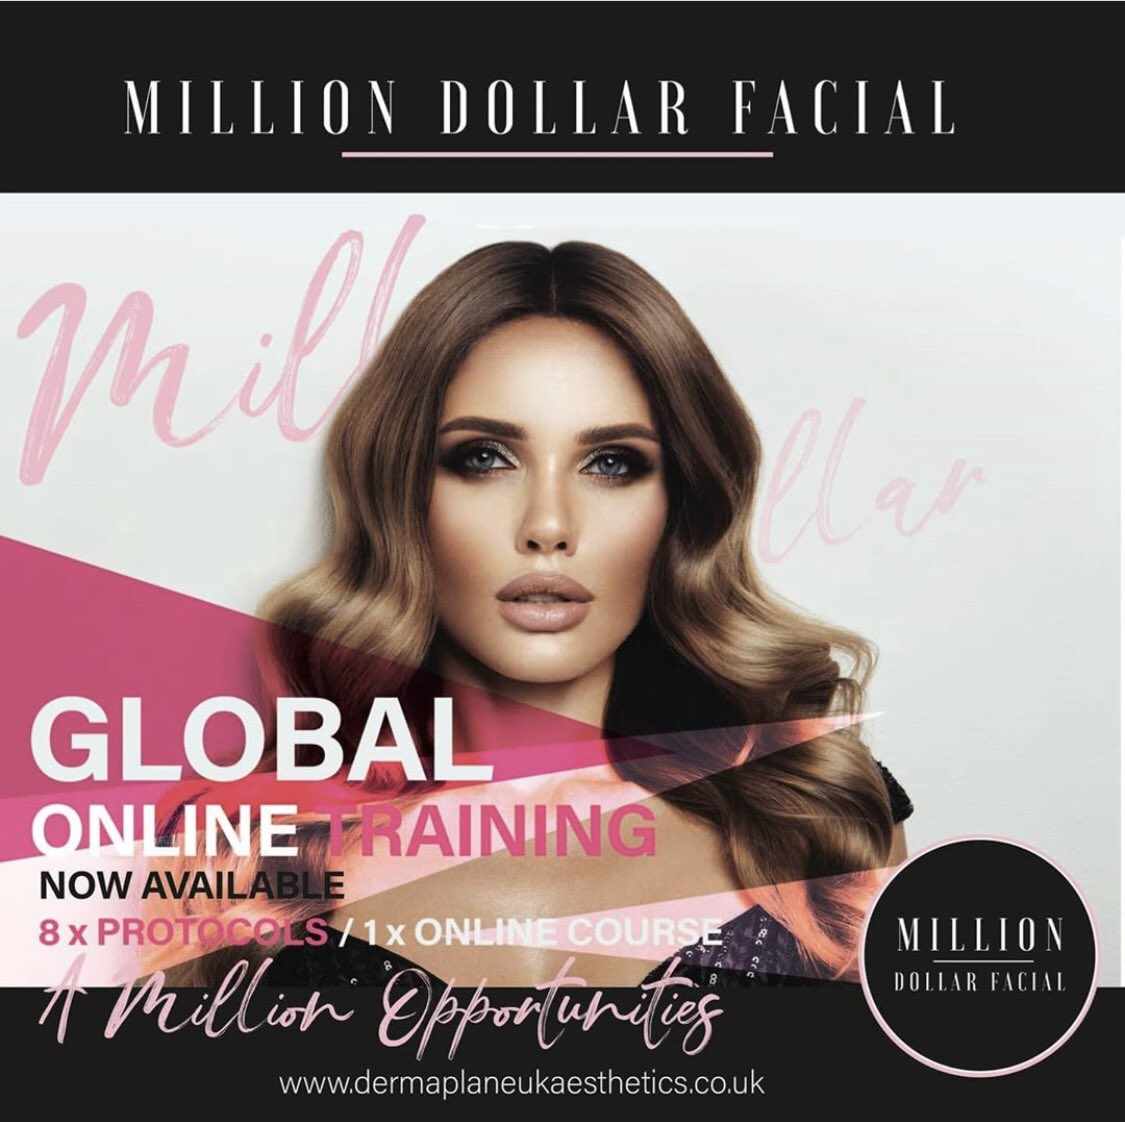 Global online training with us #MillionDollarFacial #skincare #DermaplaneUKpic.twitter.com/aG3CRoUVEe